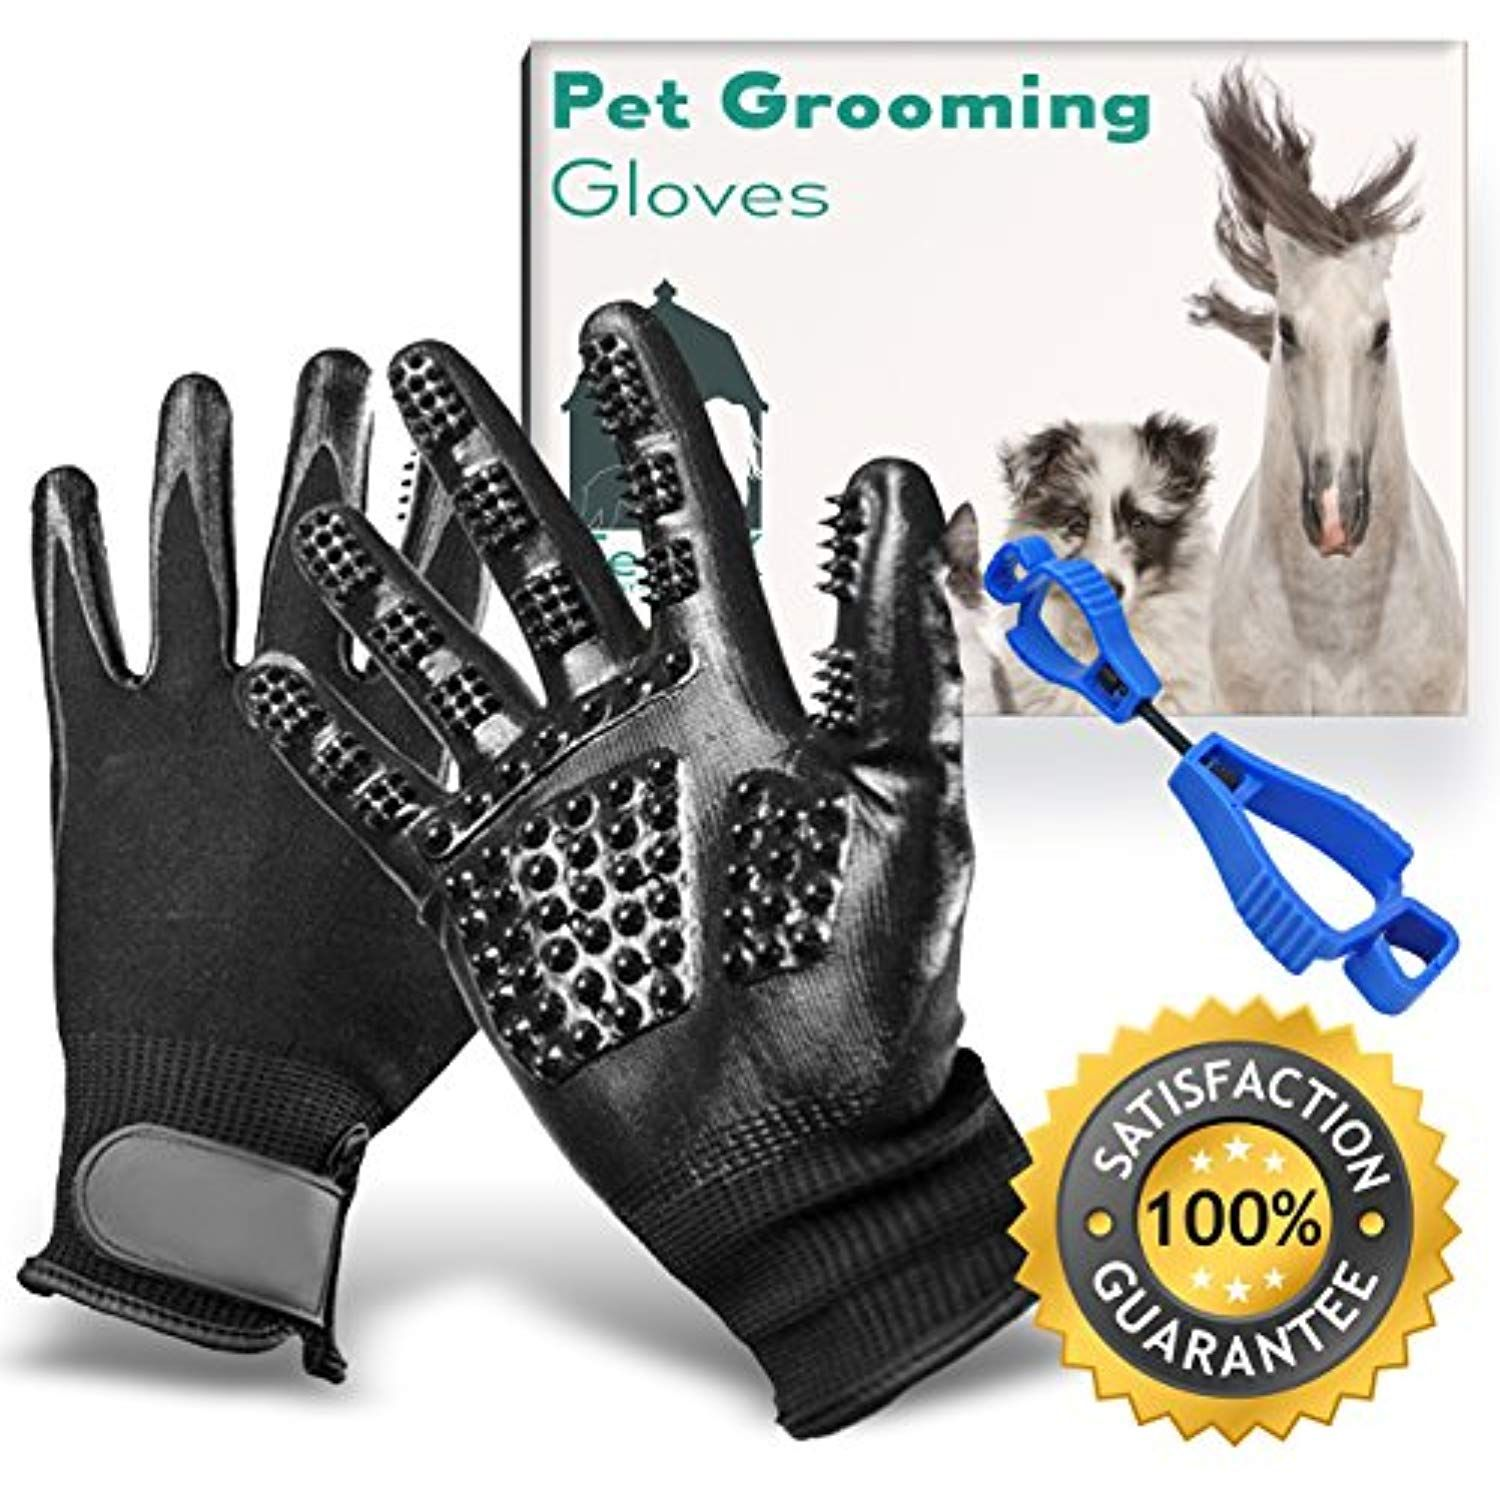 Pet Grooming Glove,Pet Grooming Gloves,Pet Grooming Glove Set For Dogs Horses